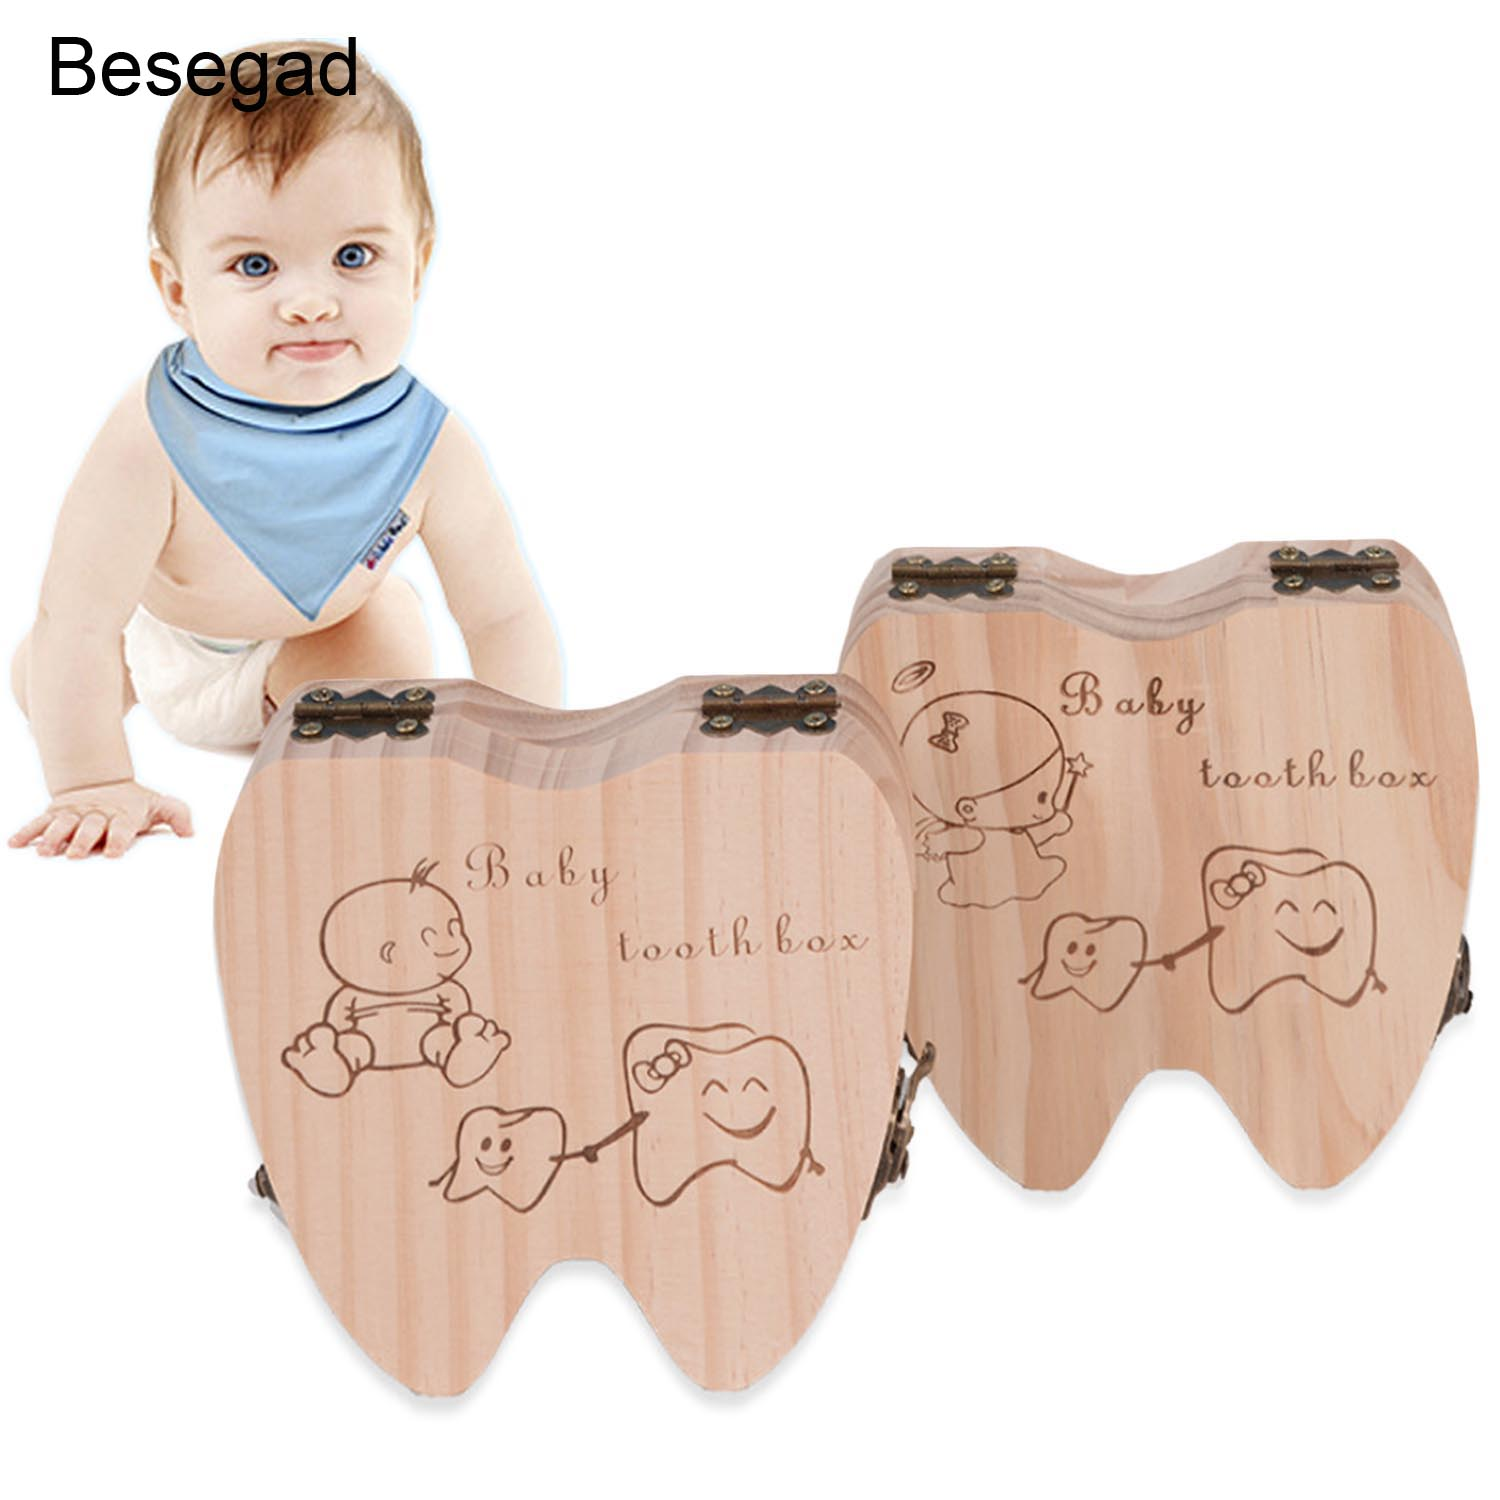 Besegad Lovely Wooden Baby Deciduous Teeth Tooth Storage Keepsake Box Collecting Curl Souvenir Container Organizer For Child Kid